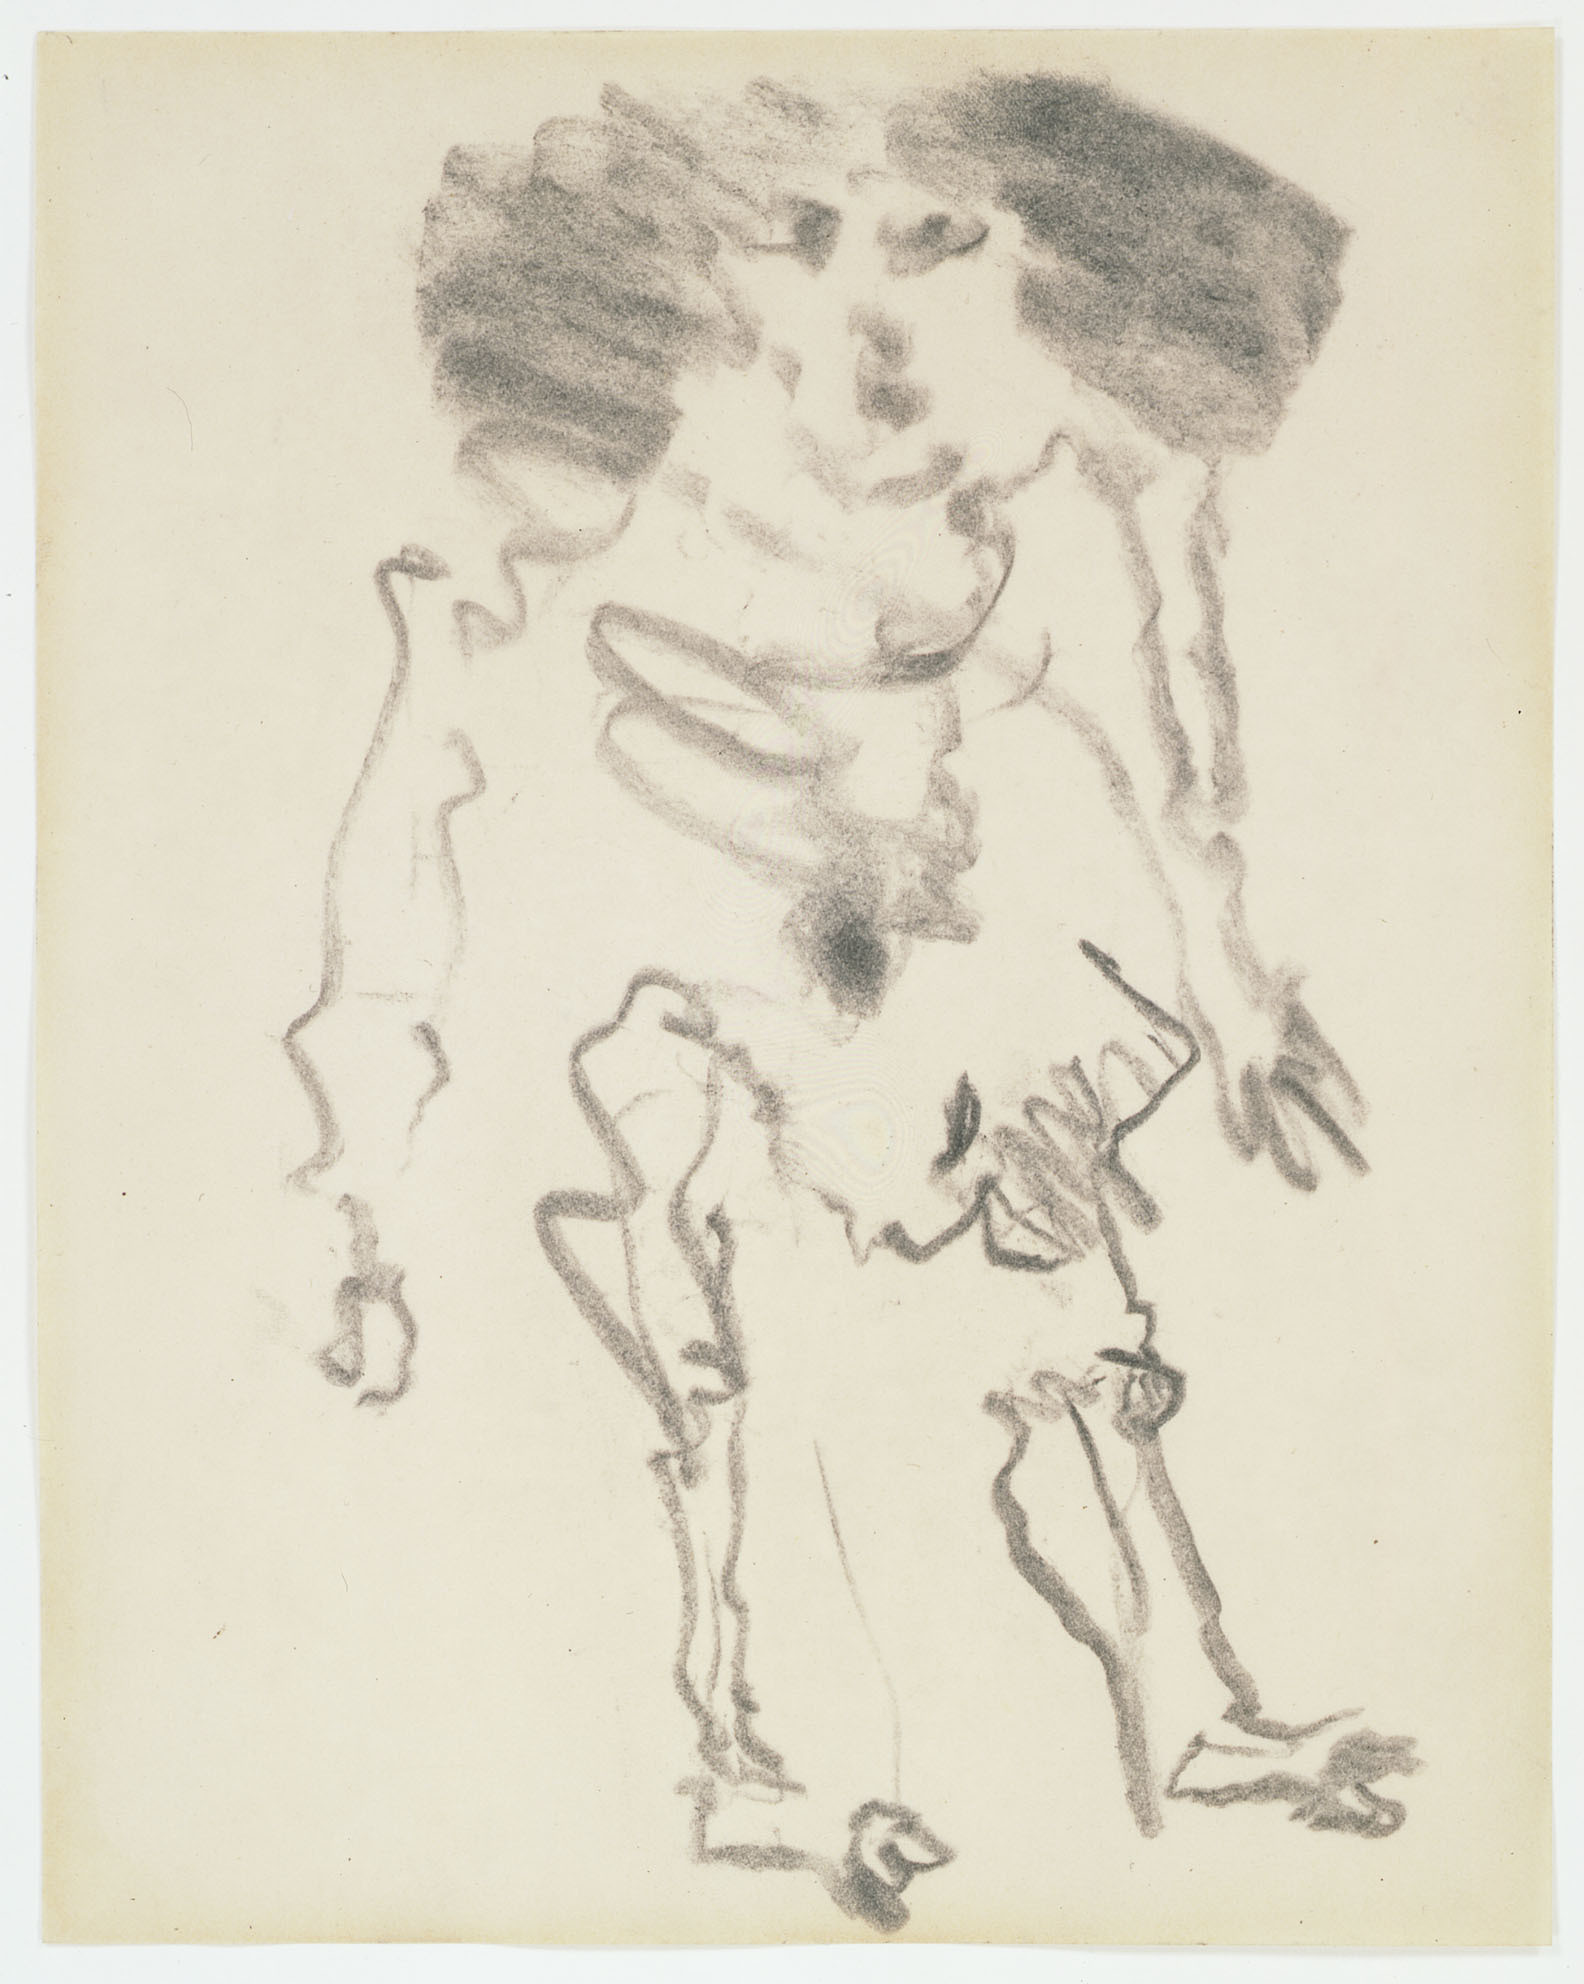 Willem de Kooning. Untitled. 1966